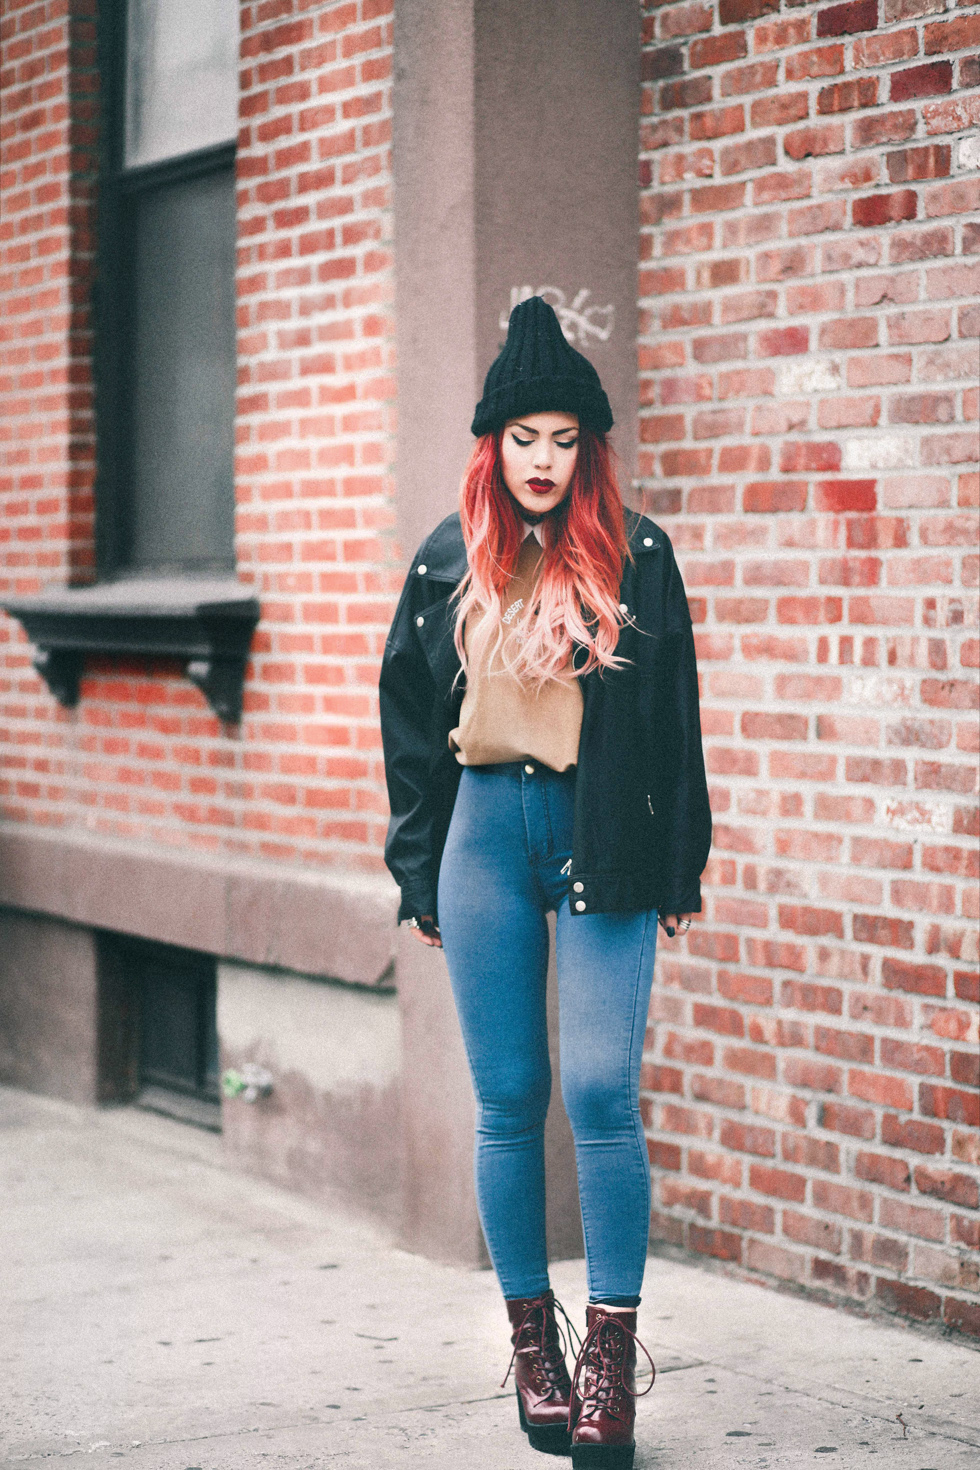 Lua wearing boyfriend biker jacket and red wedge boots